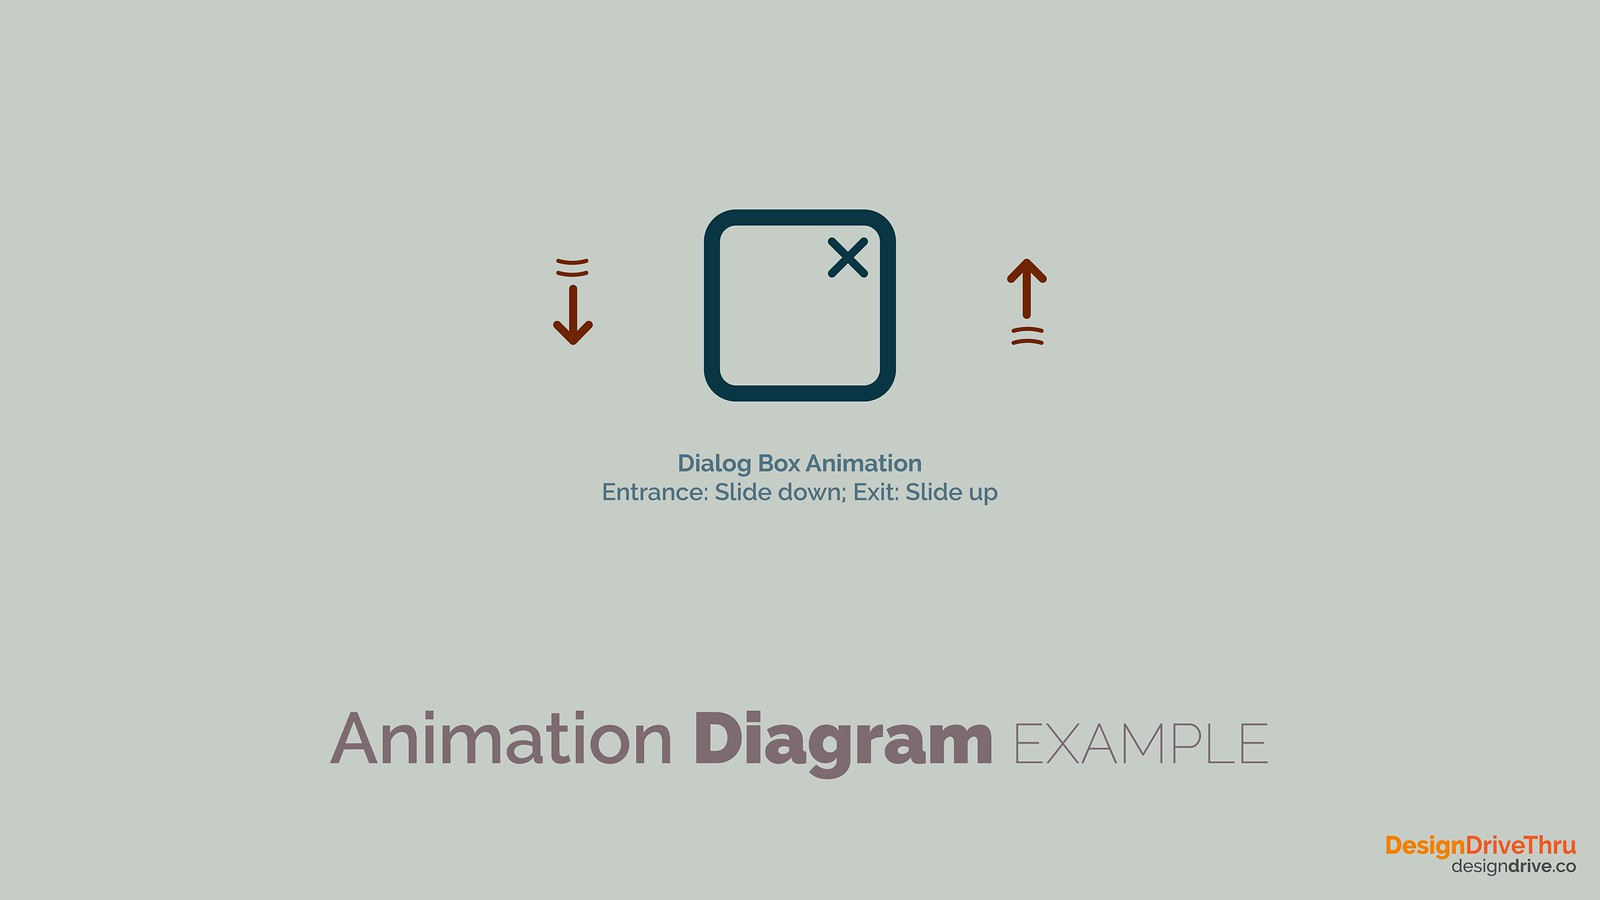 Animation Diagram Example